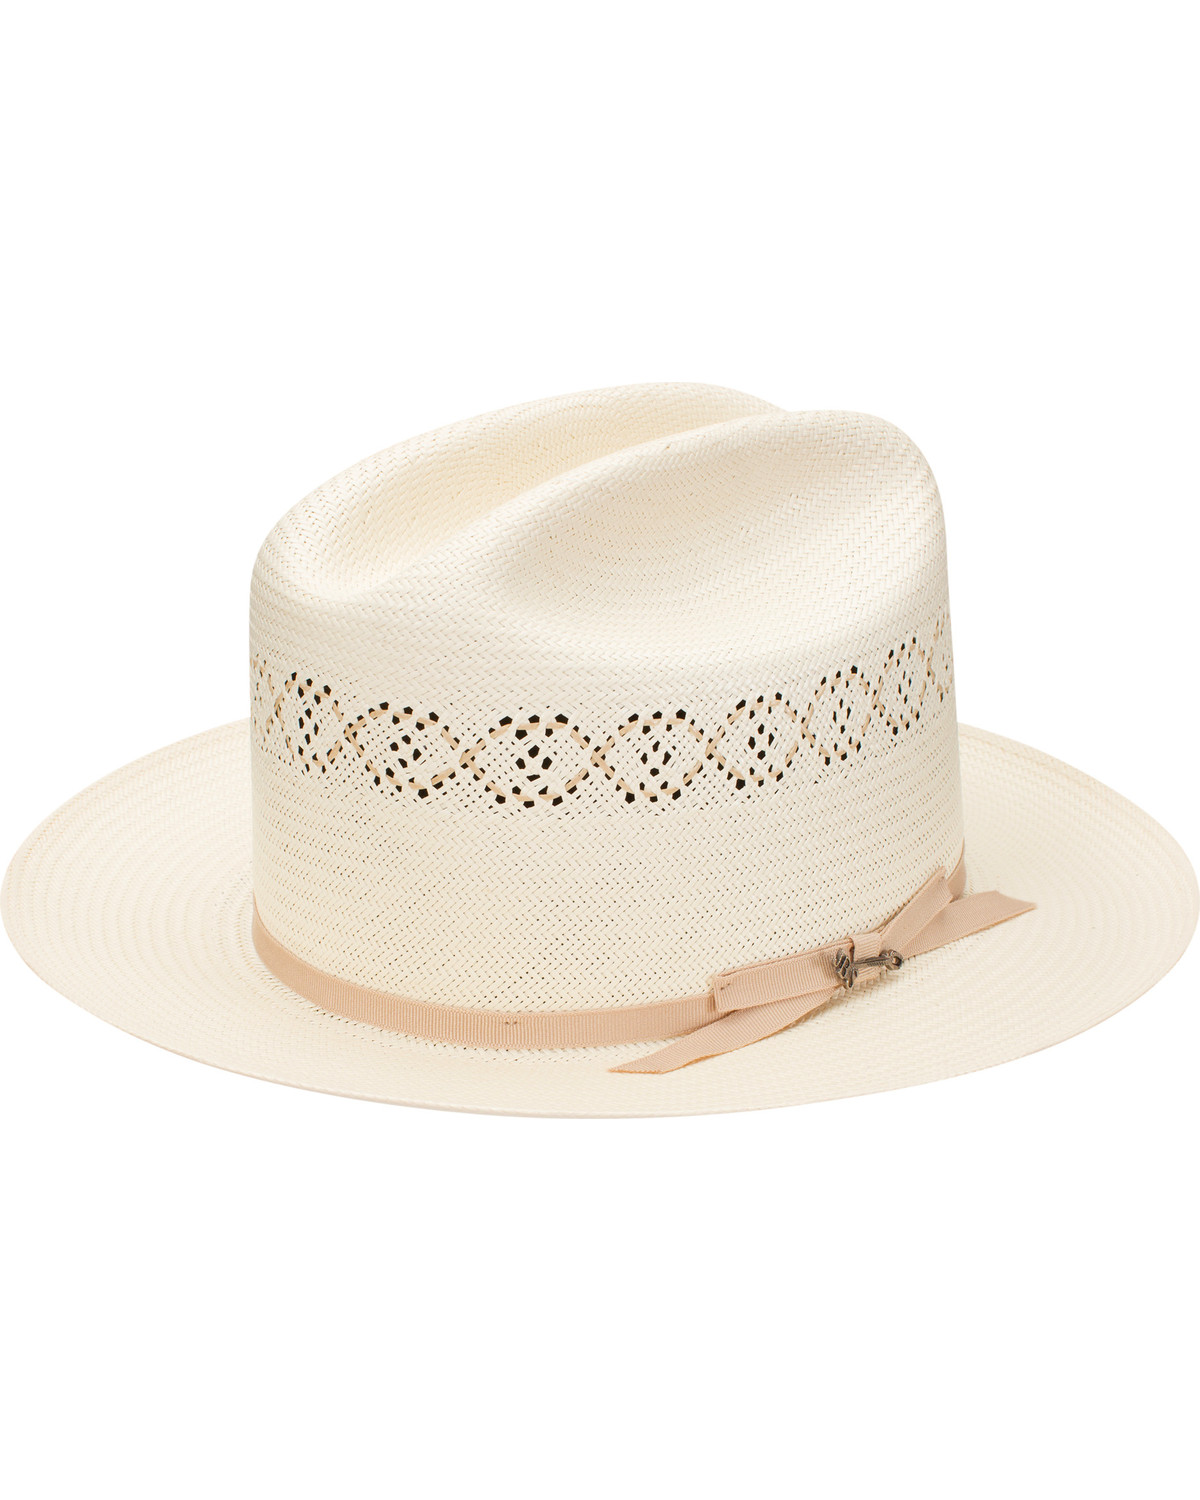 25093135 Stetson Men's Natural Open Road 1 Straw Hat